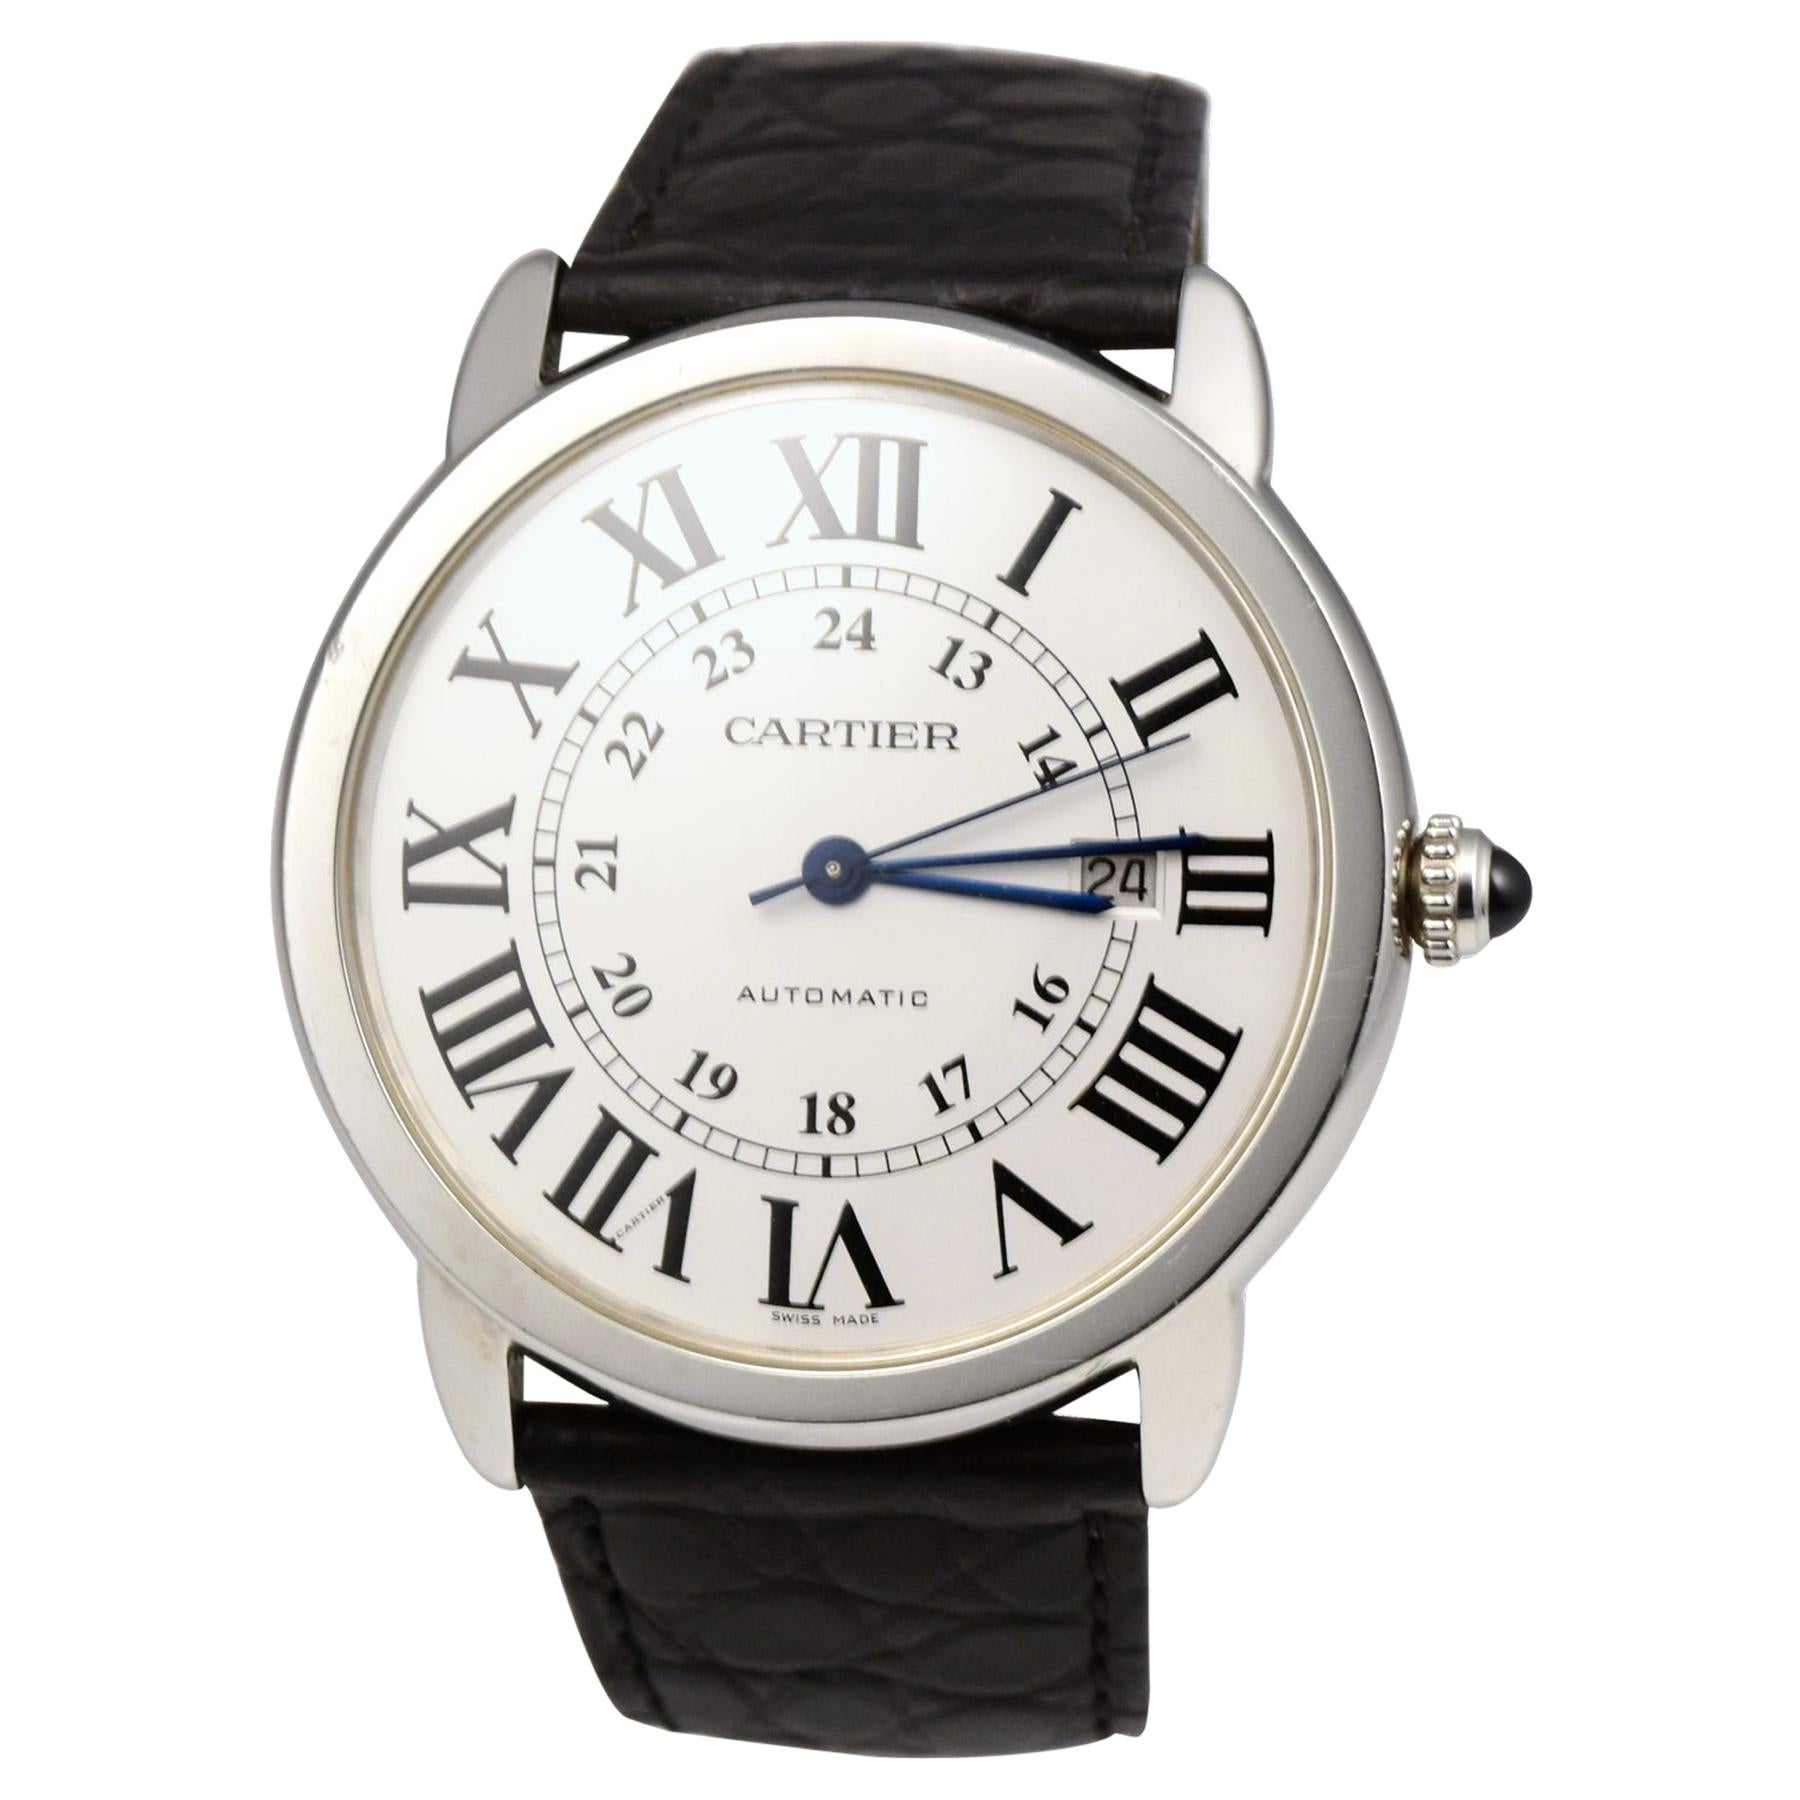 Cartier Ronde Solo in Stainless Steel Black Leather Strap Watch